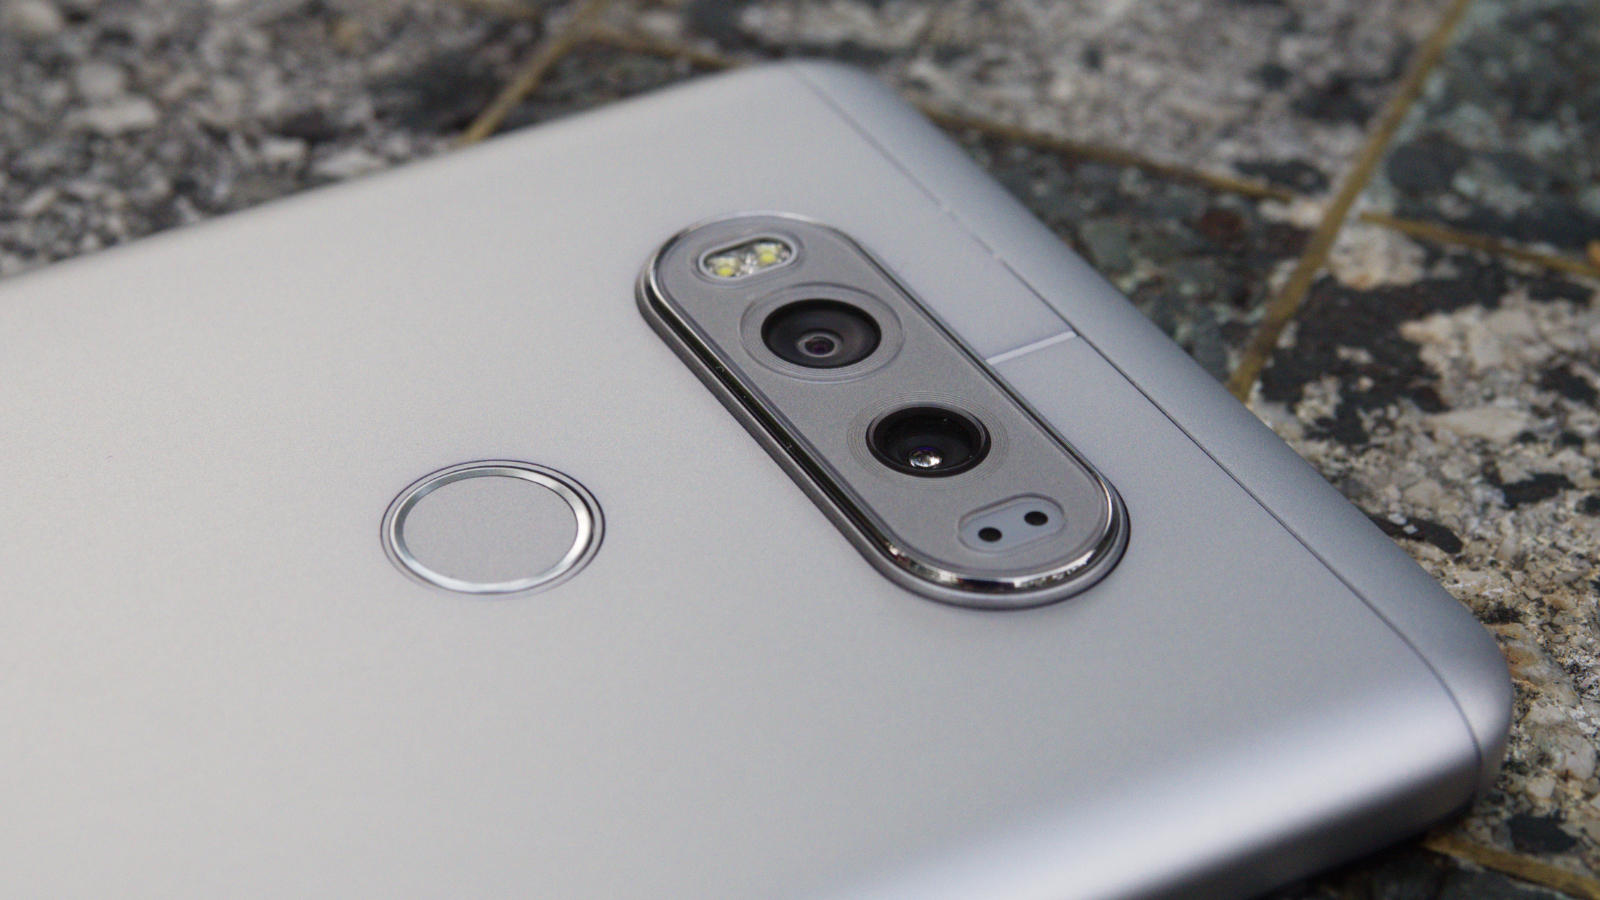 Will the LG V30 camera really outperform the Galaxy S8 and iPhone 7